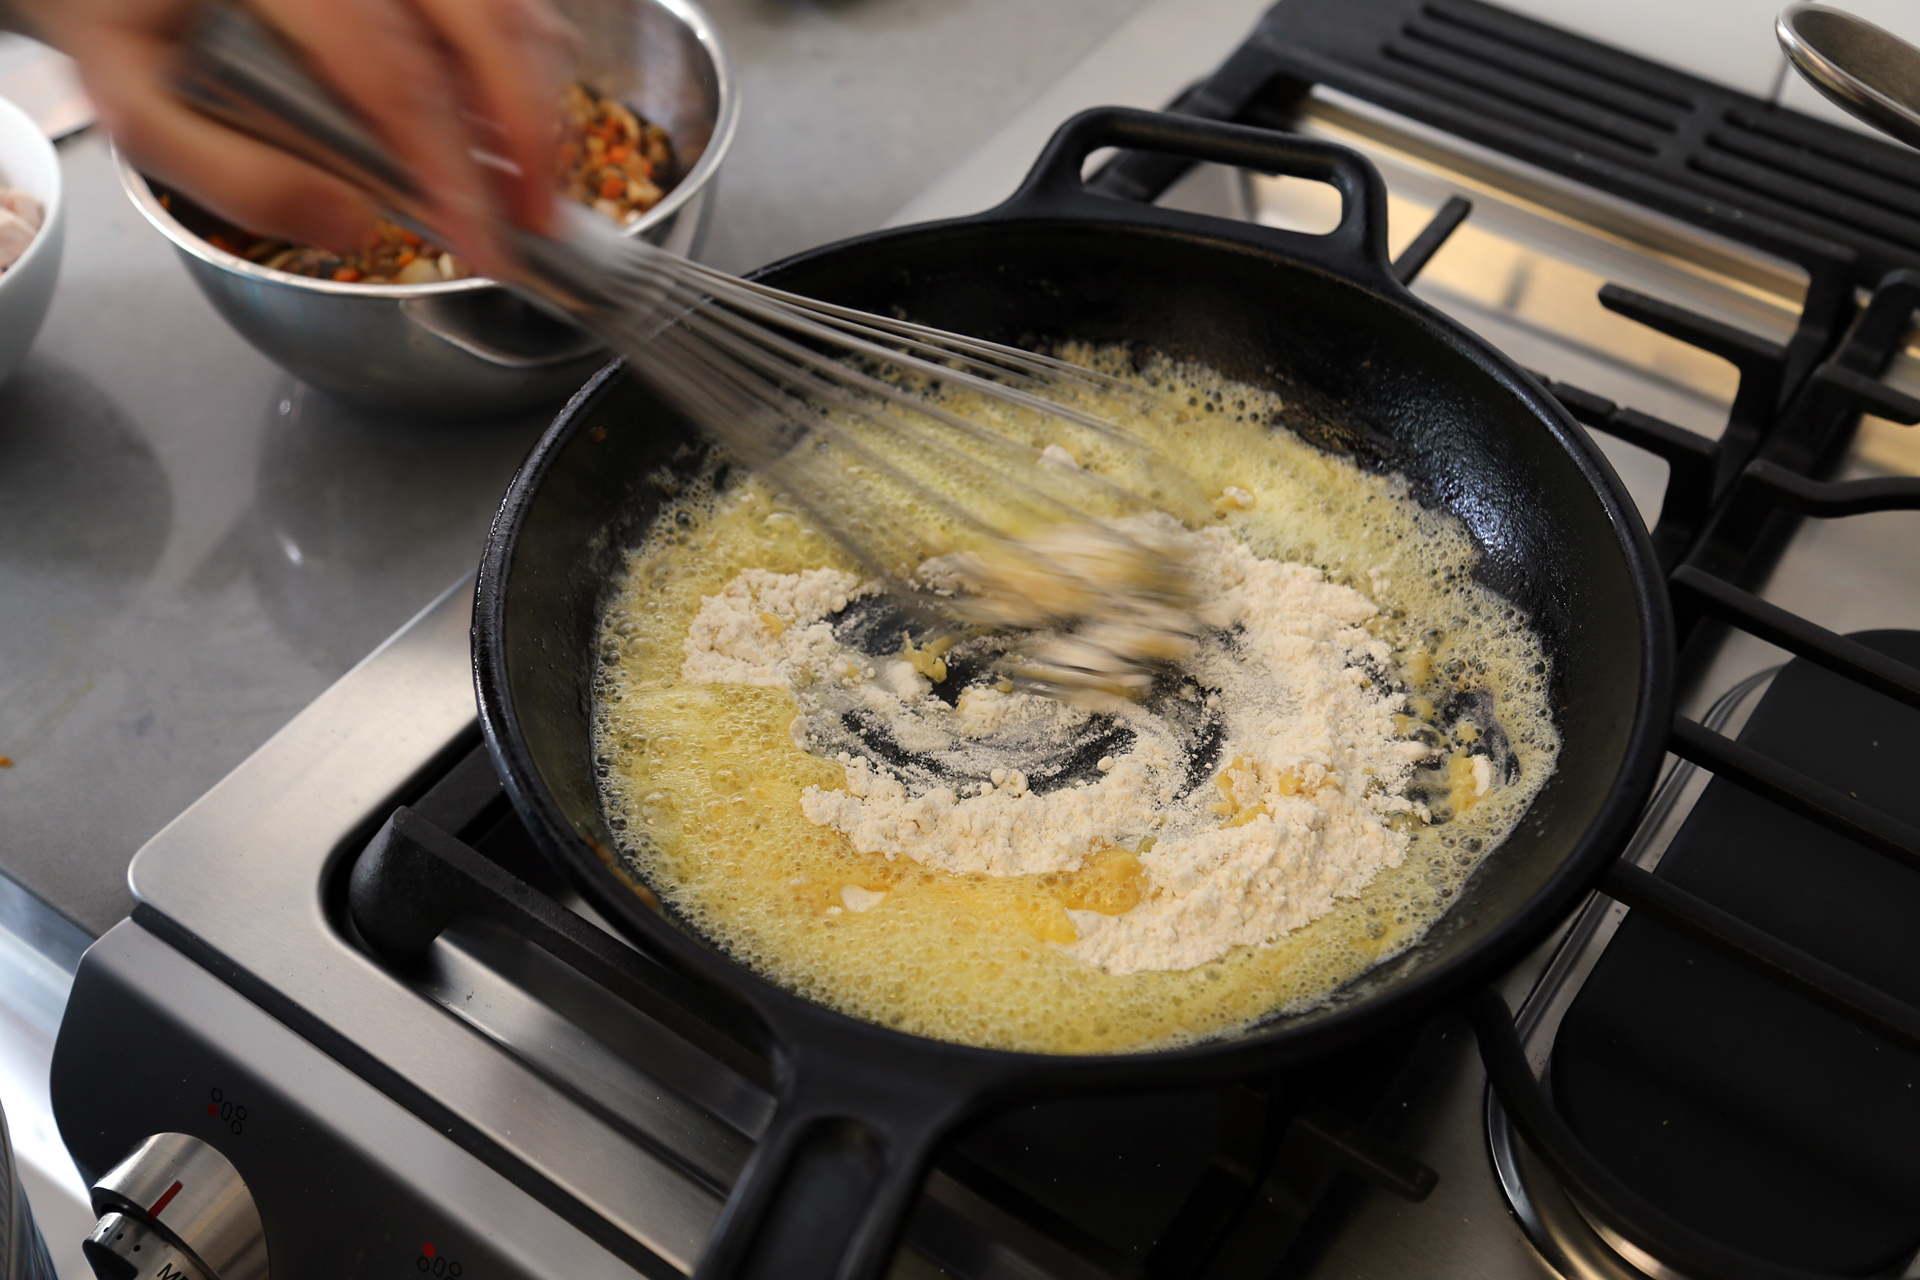 Add the remaining 5 tbsp butter to the frying pan. When melted, sprinkle in the flour.